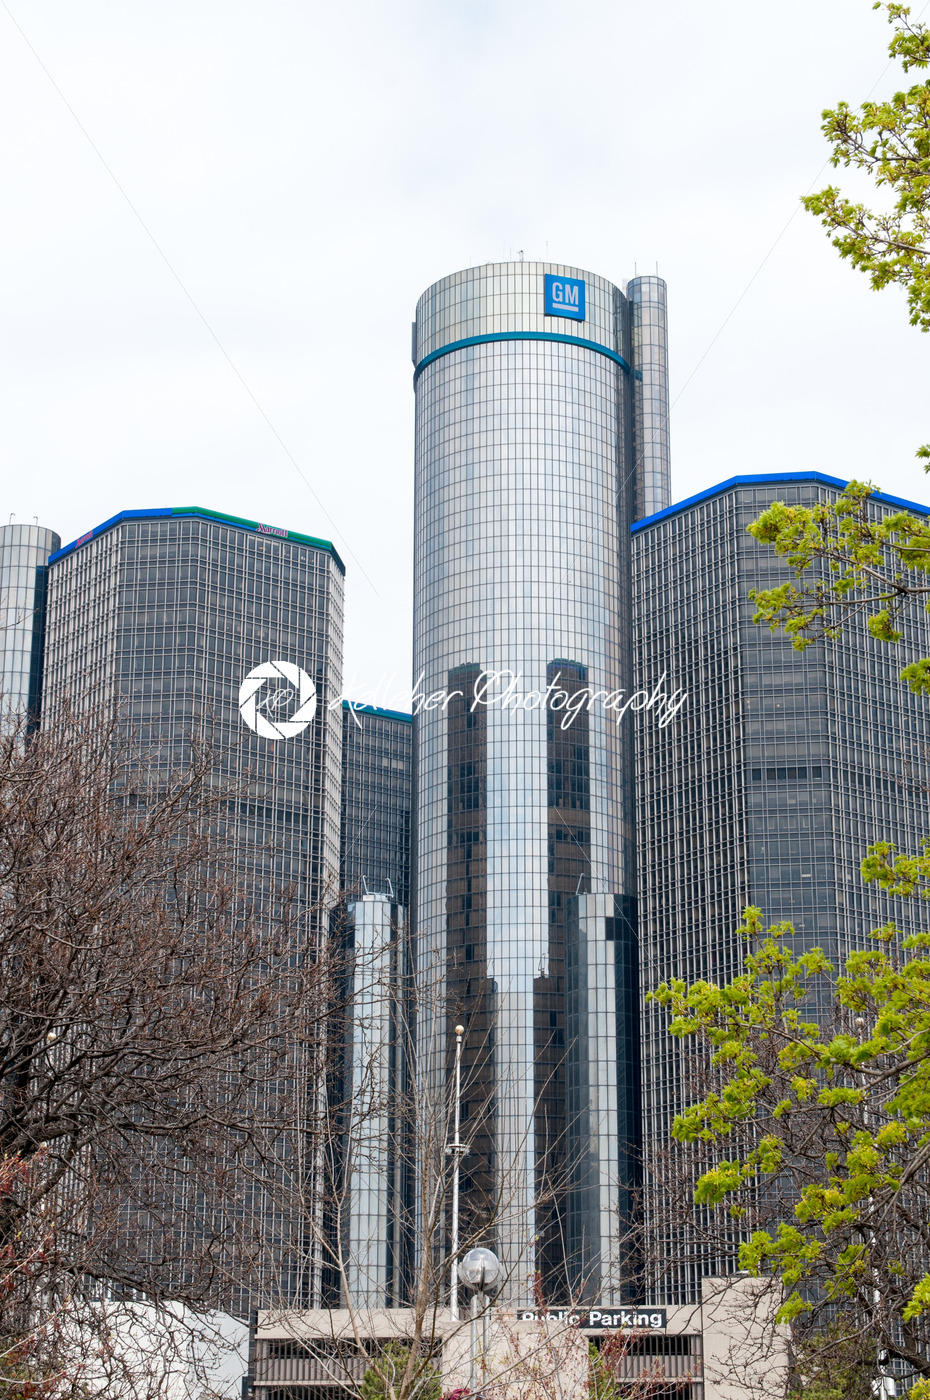 DETROIT, MI – MAY 8: General Motors World Headquarters where the majority of GM operations are based in downtown Detroit on May 8, 2014 - Kelleher Photography Store